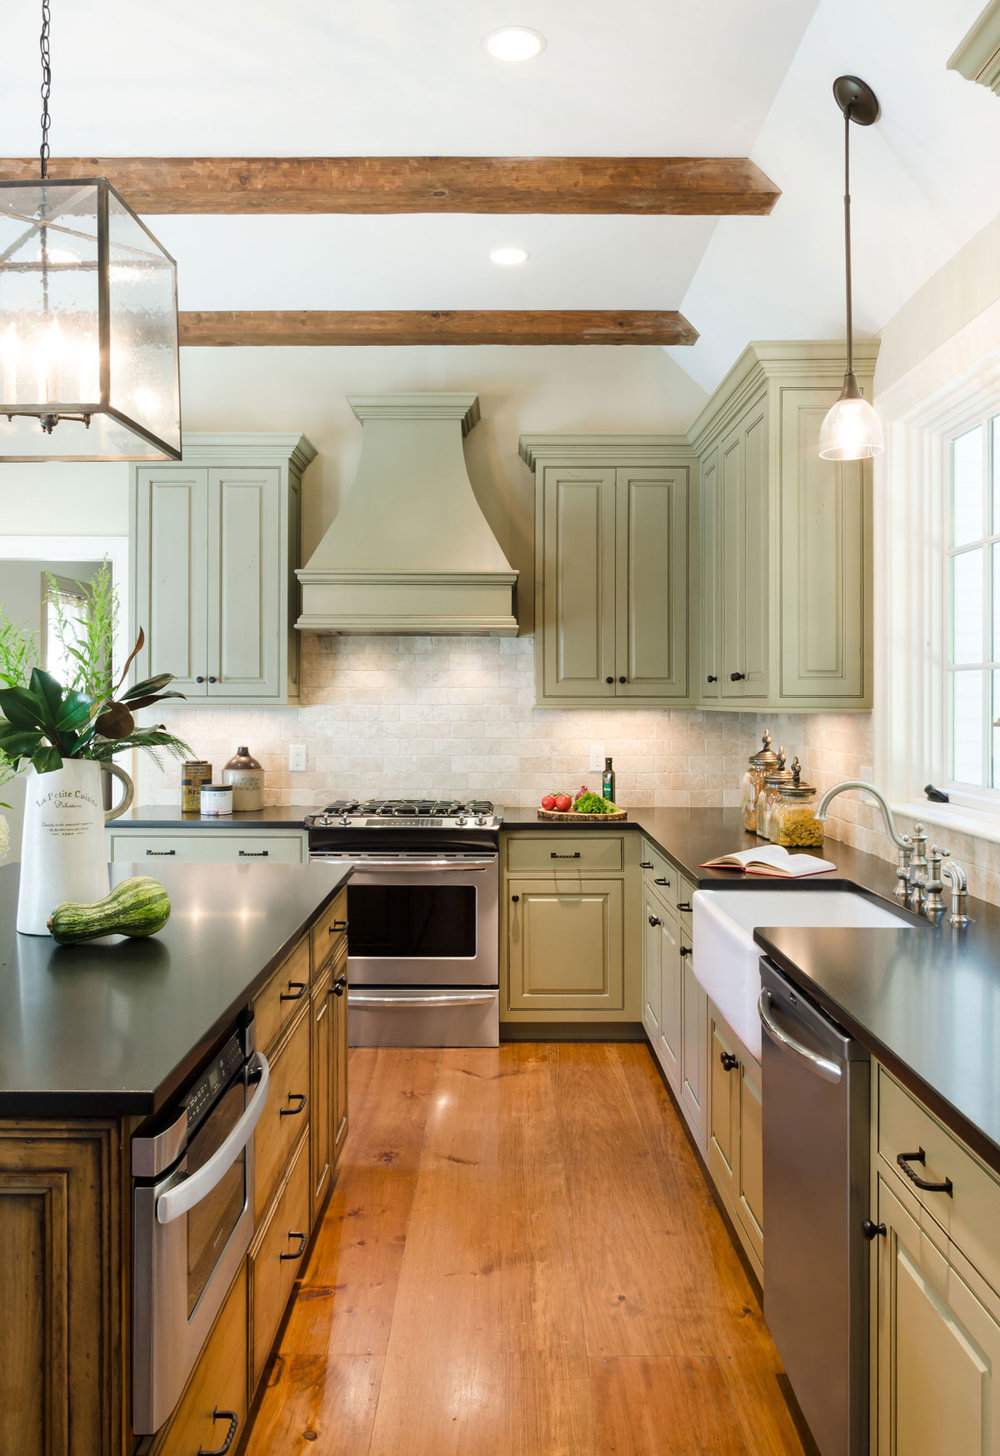 Duxbury, Ma kitchen interior design